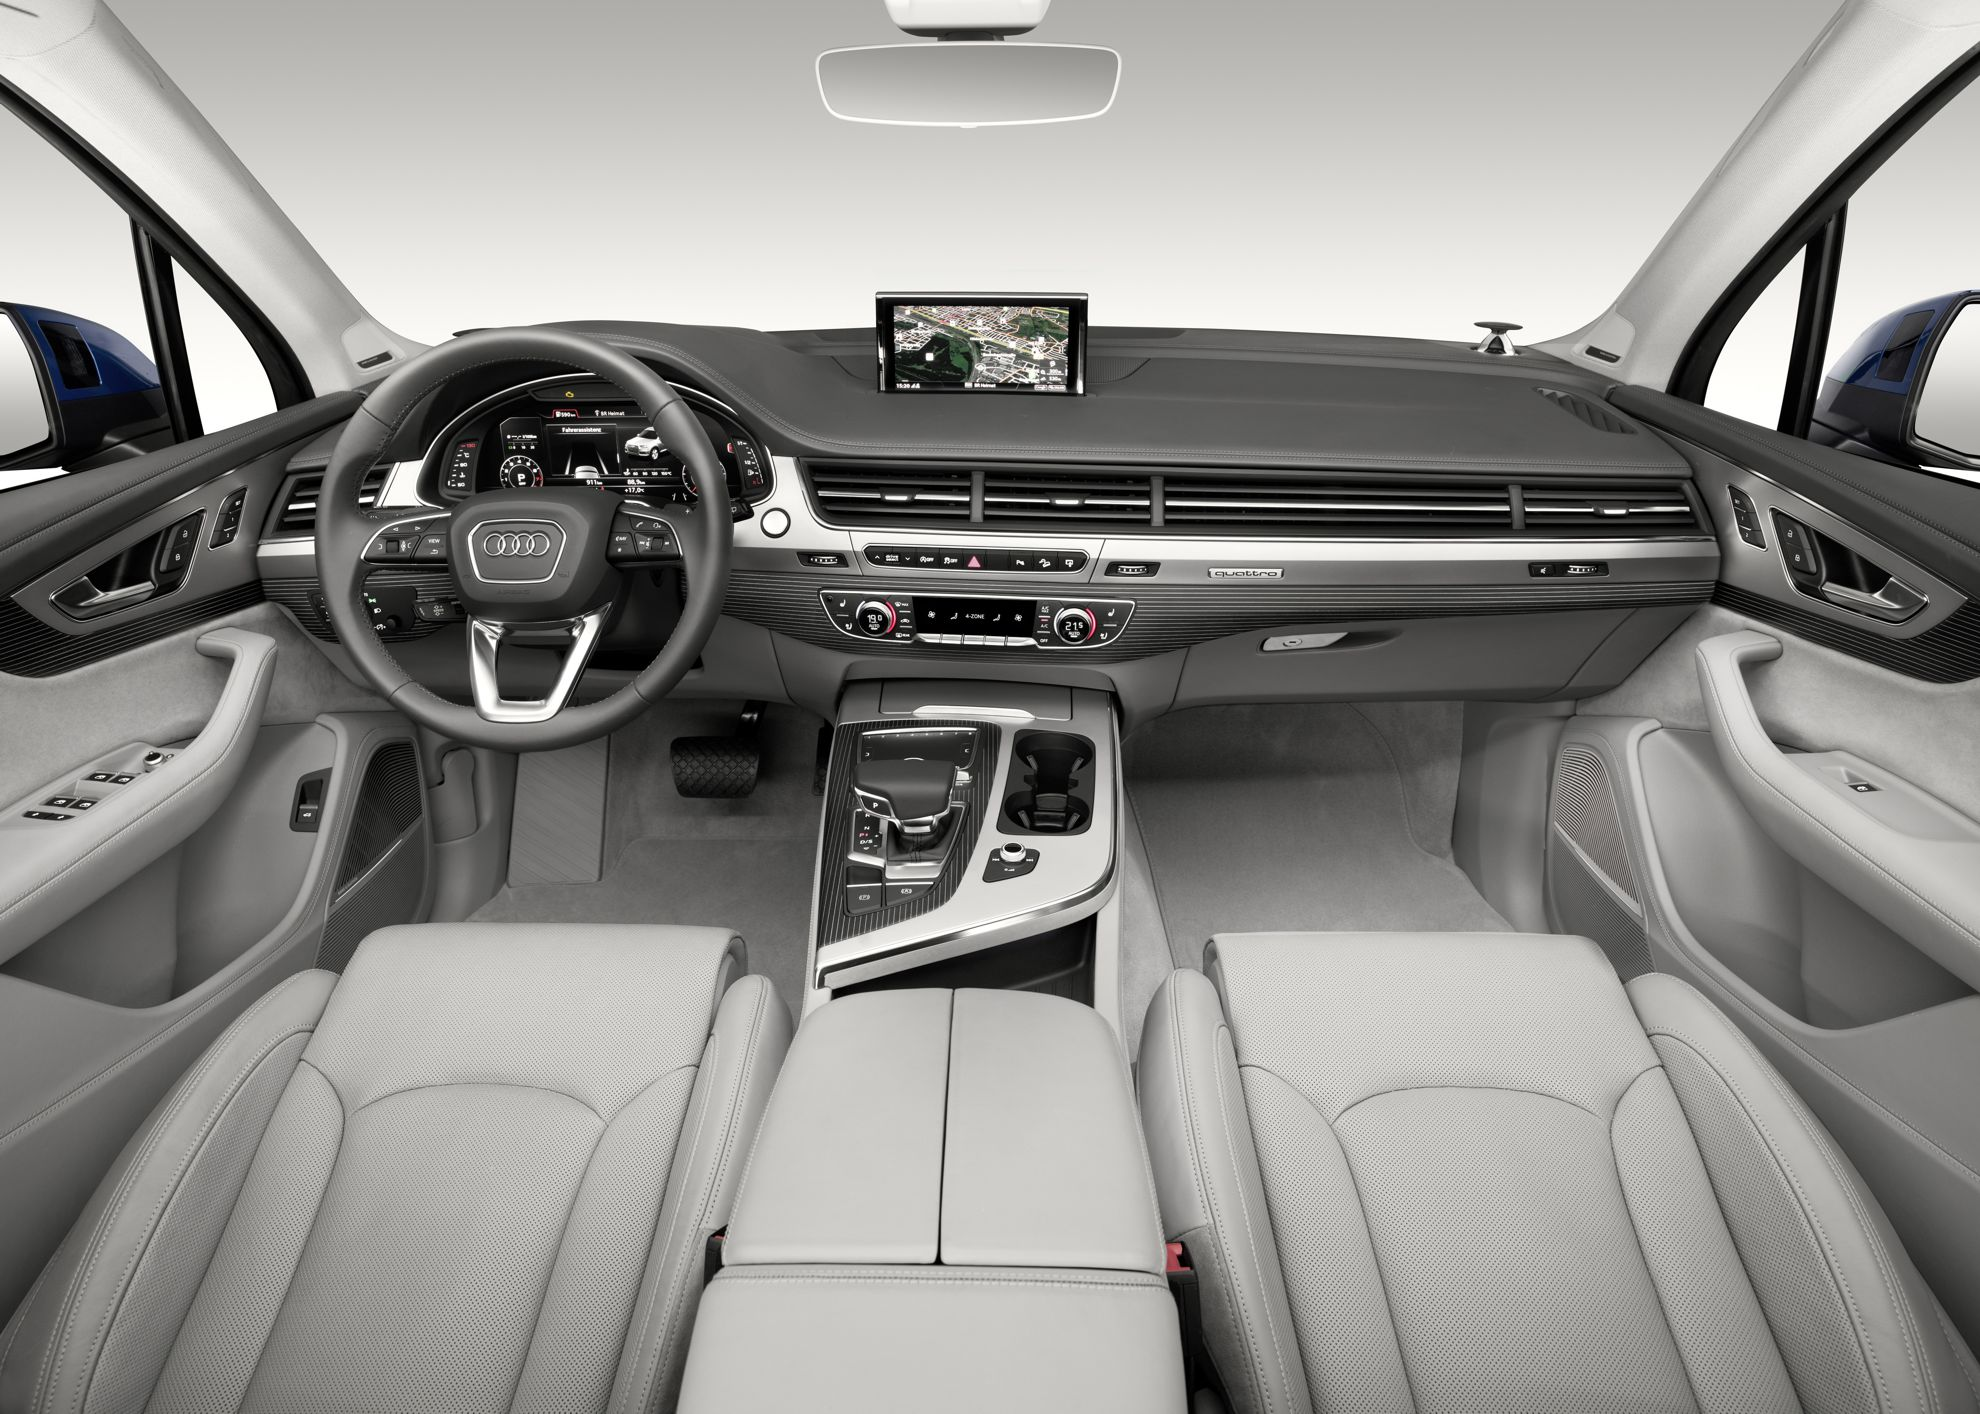 Audi Q7 Interior wins for best premium interior design